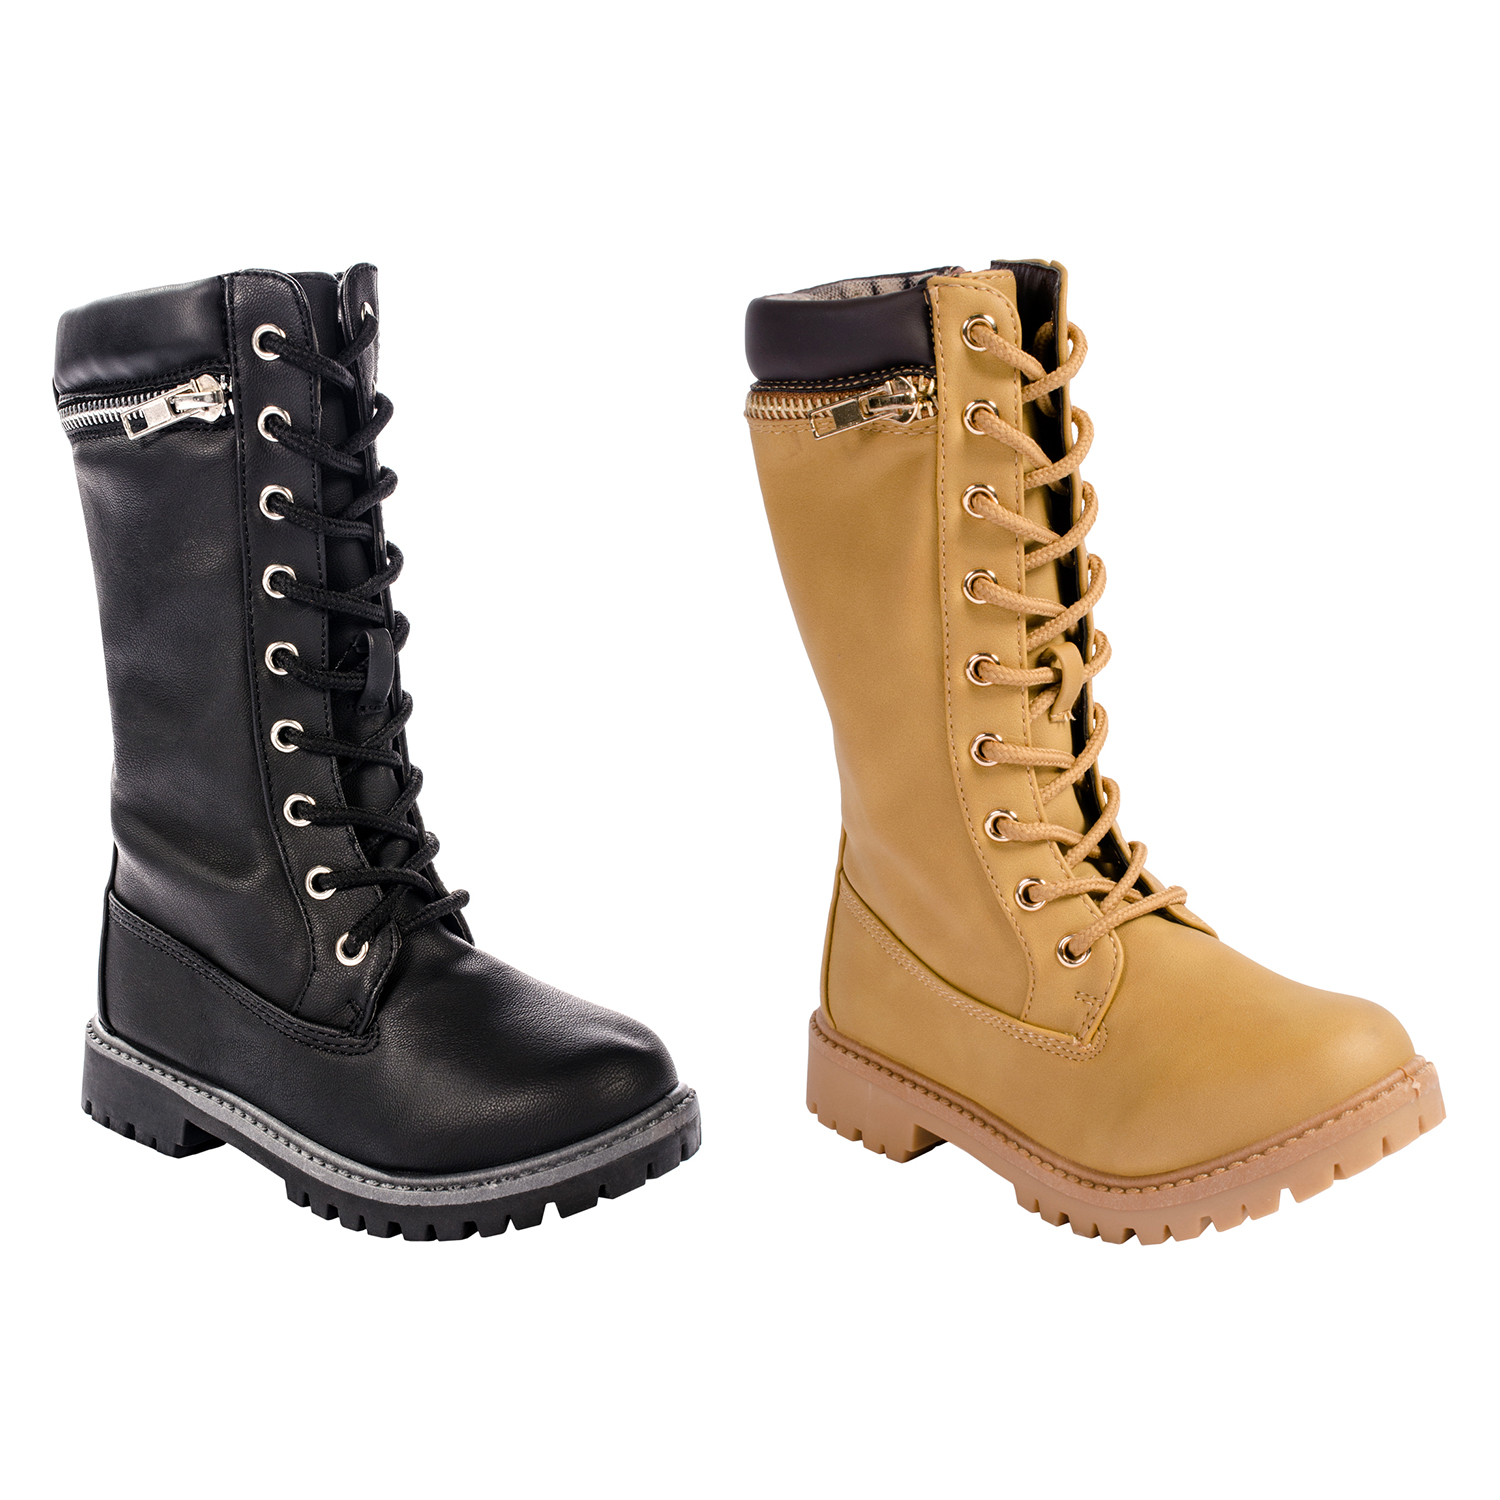 b4d85dd87b0 Details about Anna Dallas 17K Girls Lug Sole Lace Up Zip Ankle High Hiking  Boots w/ Top Zipper